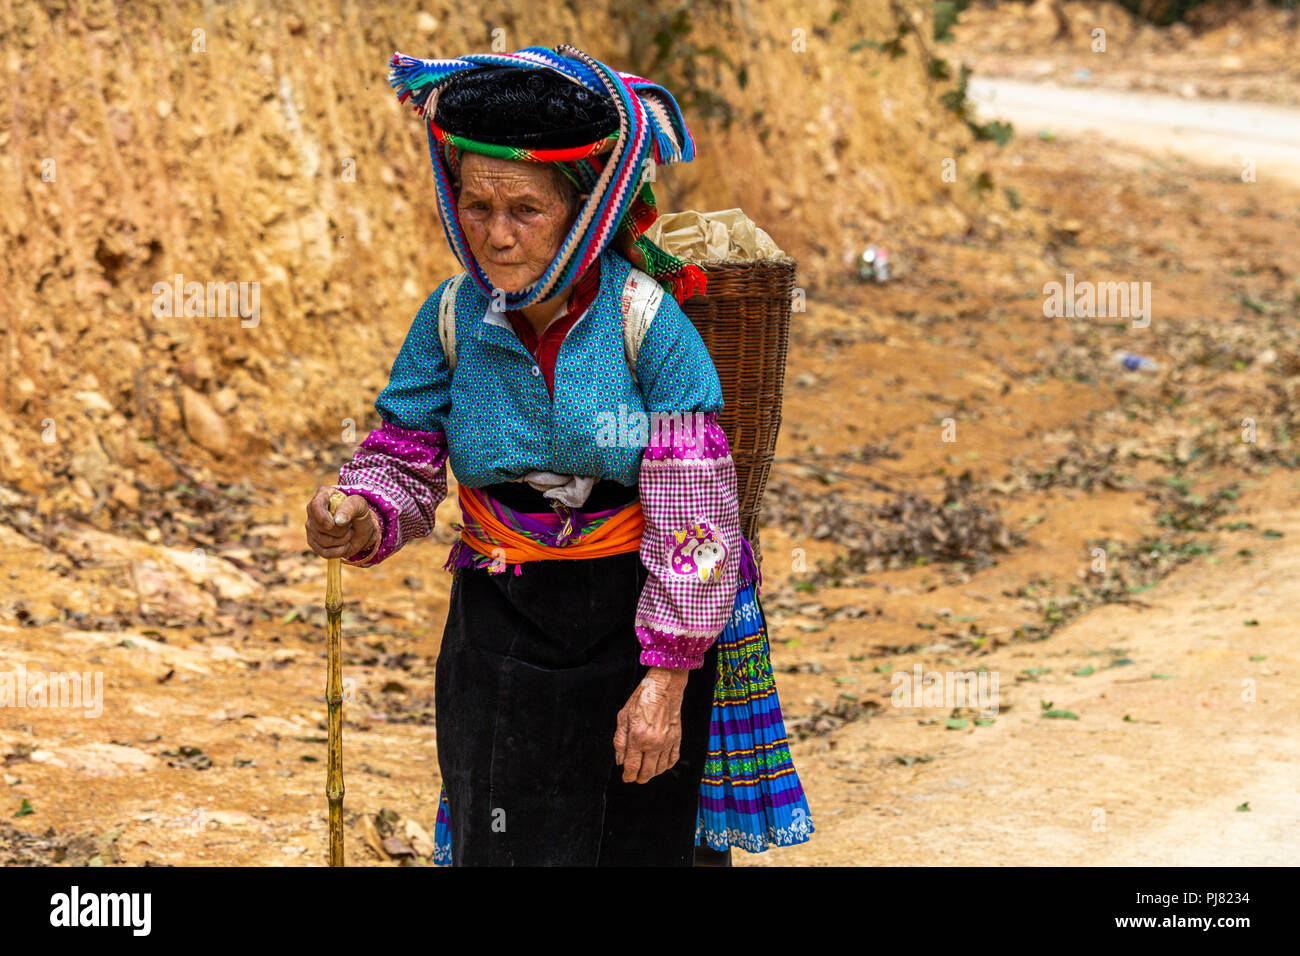 Ha Giang, Vietnam - March 18, 2018: Woman walking on a dusty road near agricultural fields in northern Vietnam Stock Photo